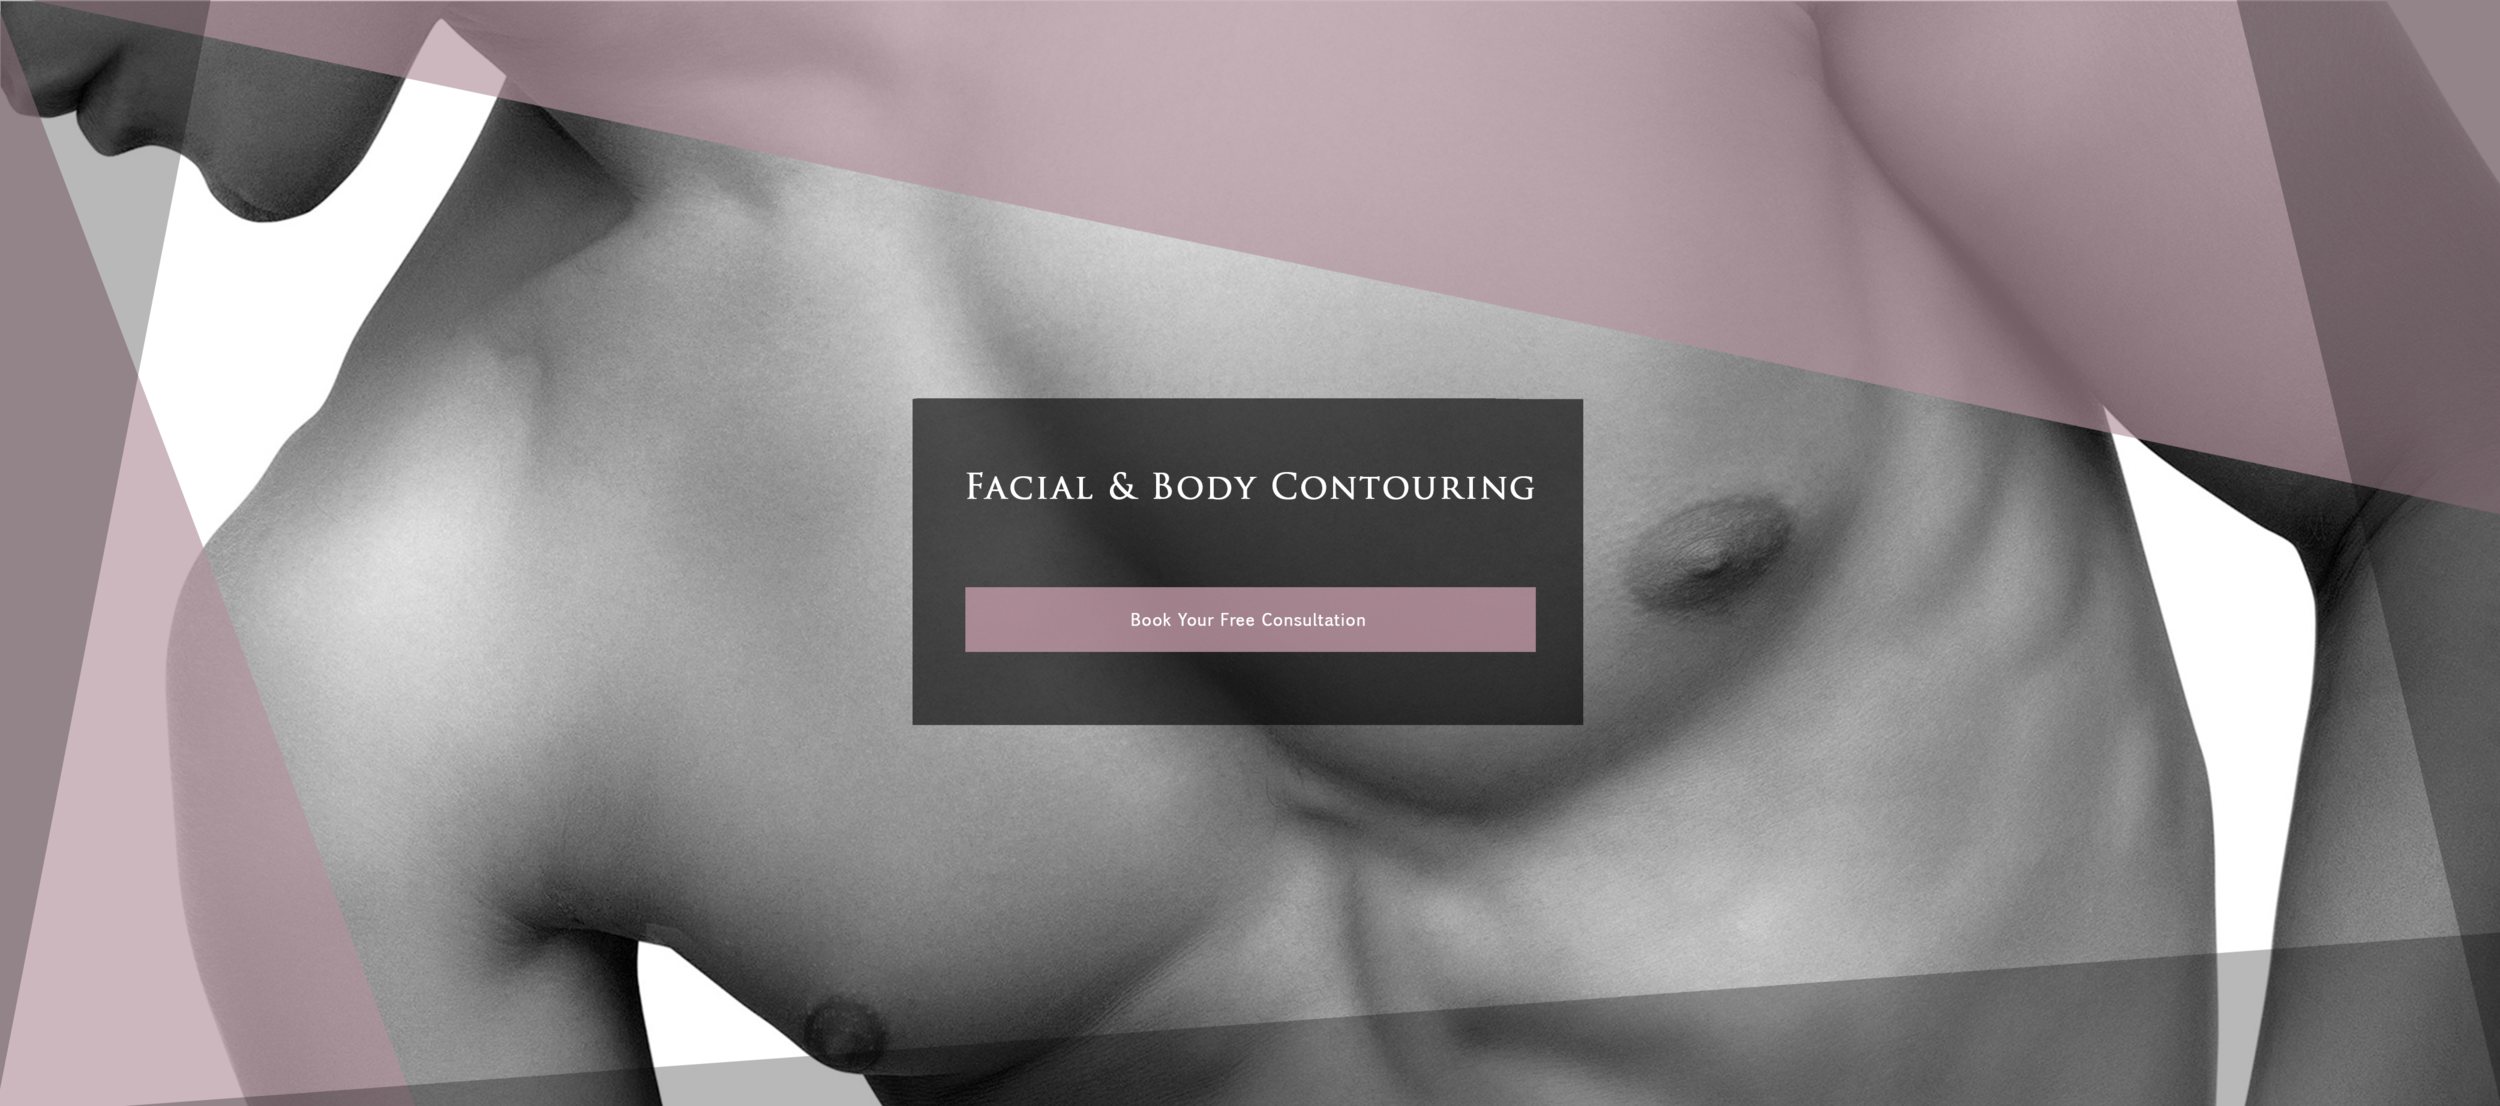 3 - Contouring.png